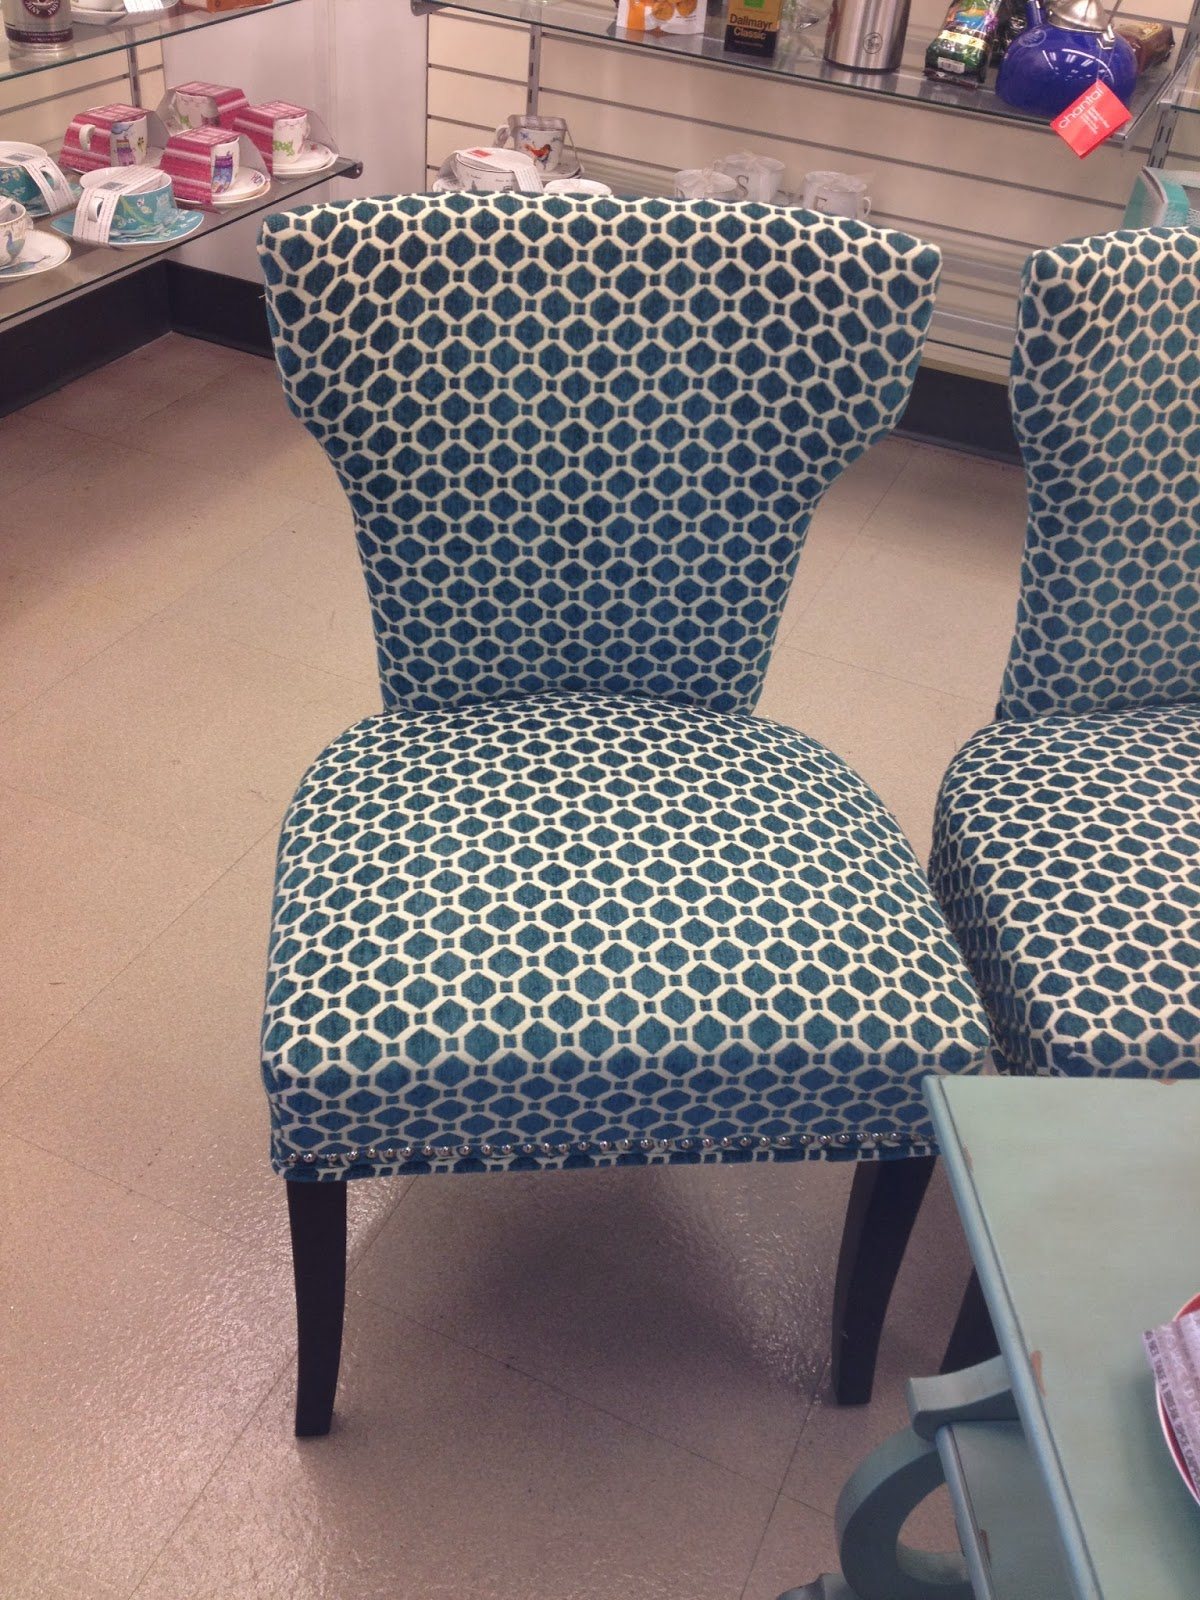 Dining Chairs At Marshalls Handmade Chair What 39s Buzzin We 39re Building A Savoy With Ryan Homes